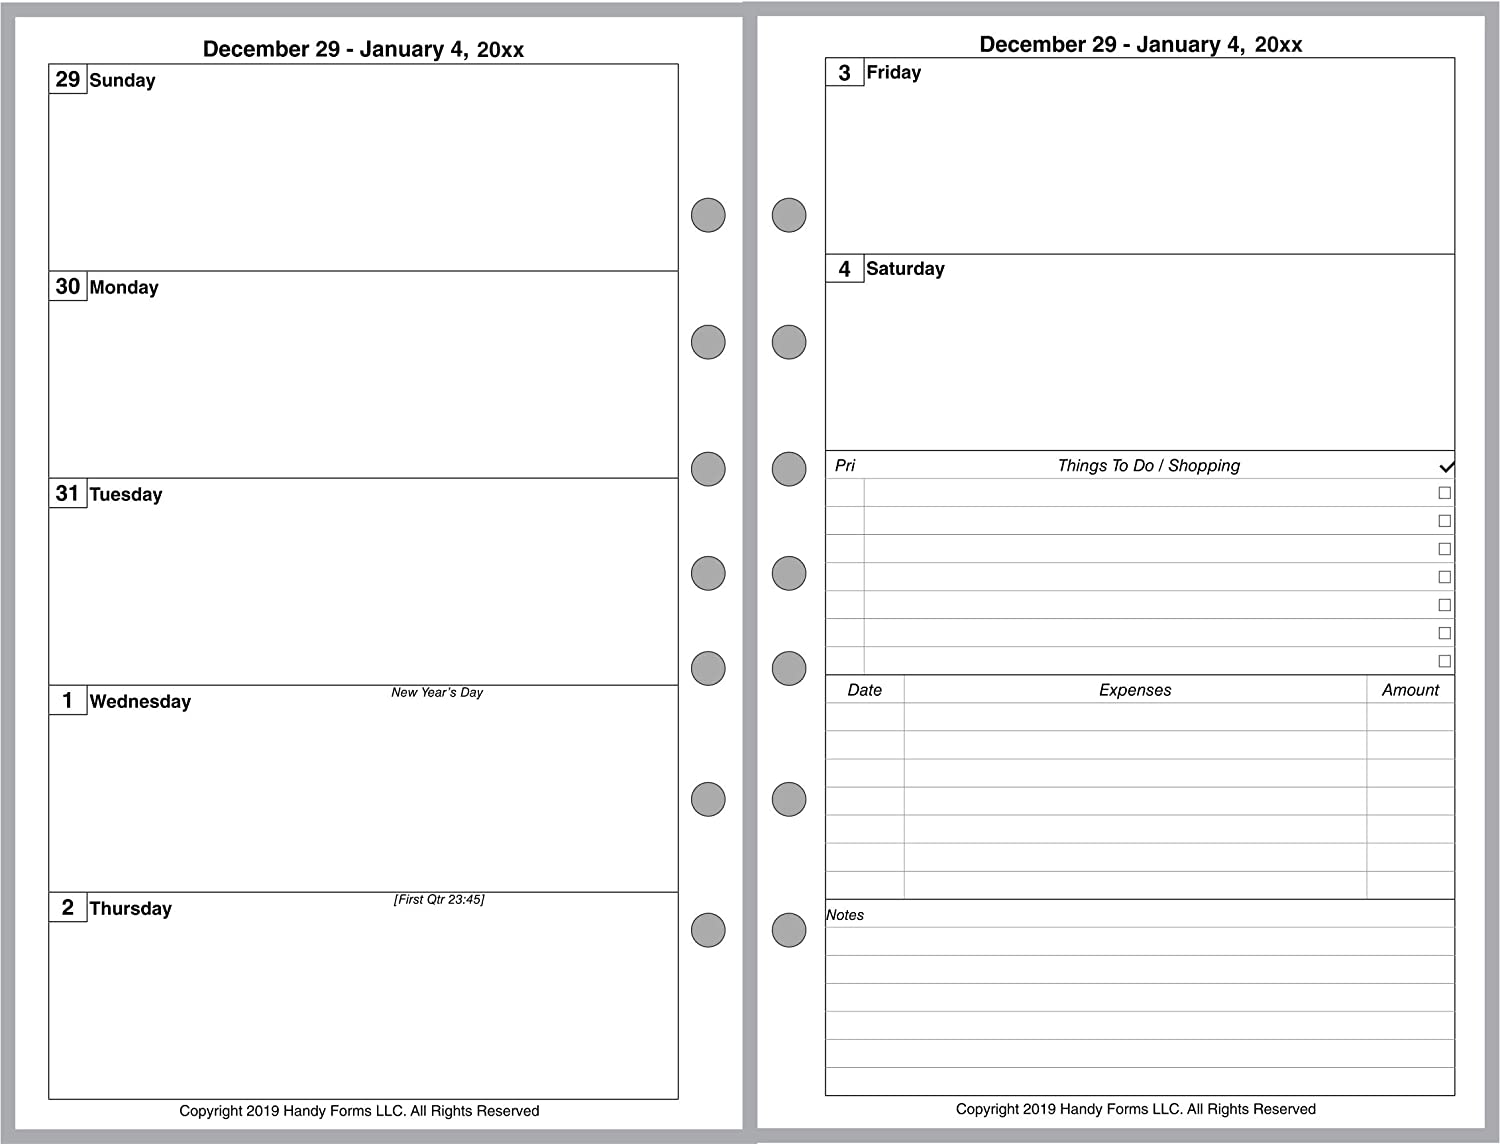 2 Pages Per Month Style A Day Runner 2 Pages Per Week Day-Timer and Others Week Starts on Monday 2020 Weekly /& Monthly Planner for 7-Ring Notebooks by Franklin-Covey Without Lines.